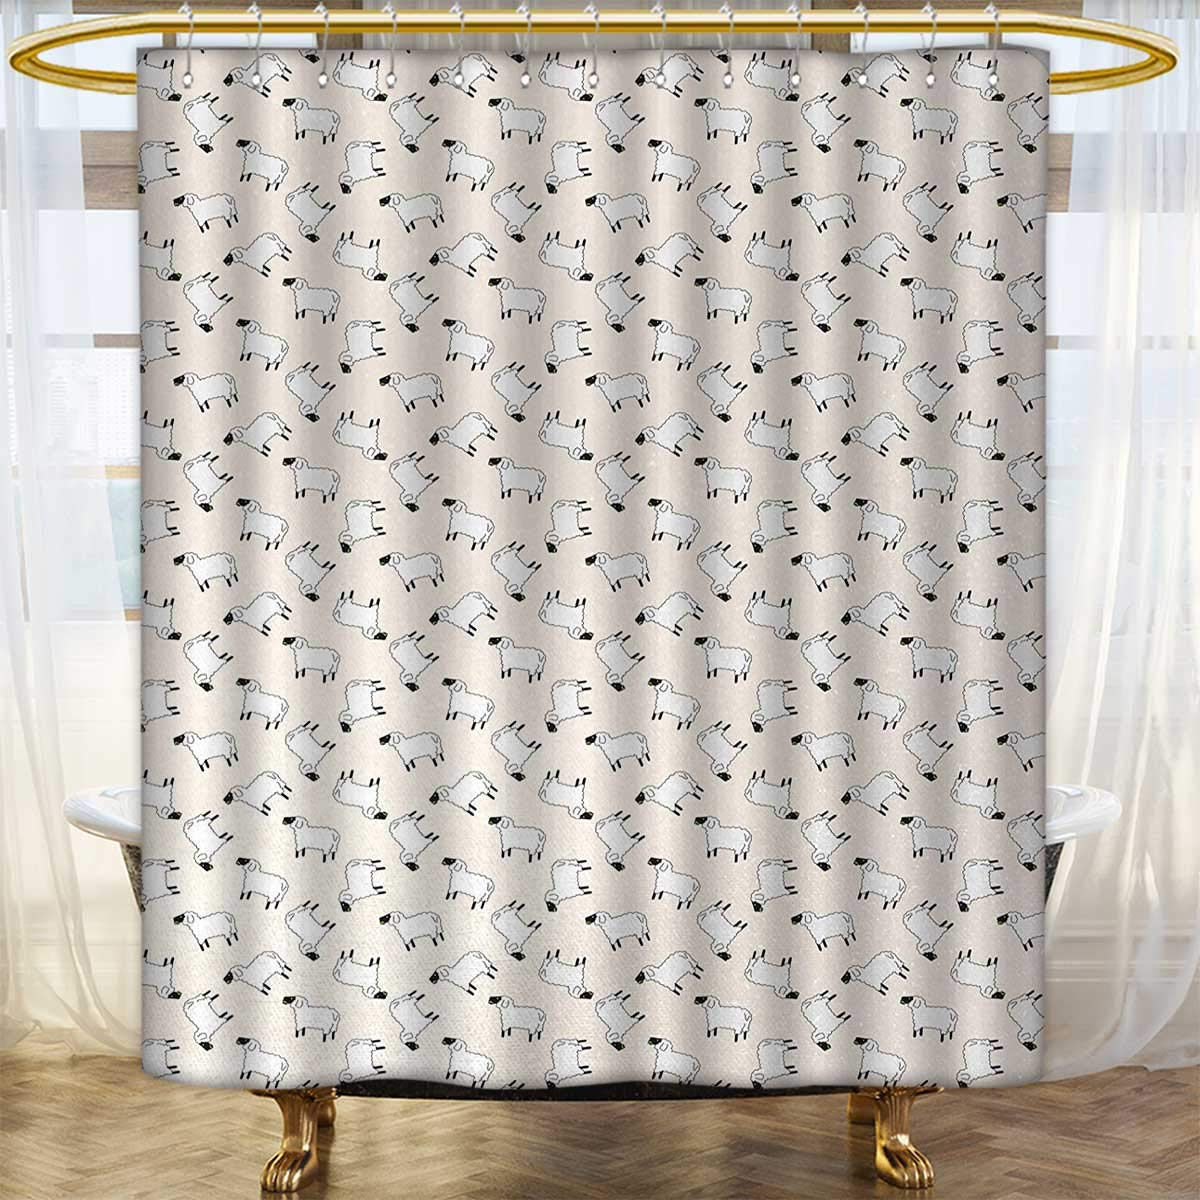 Sheep Shower Curtains 3D Digital Printing Cartoon Style Funny Animals Chewing Green Weed Farm Wildlife Themed Pattern Custom Made Curtain 36x84